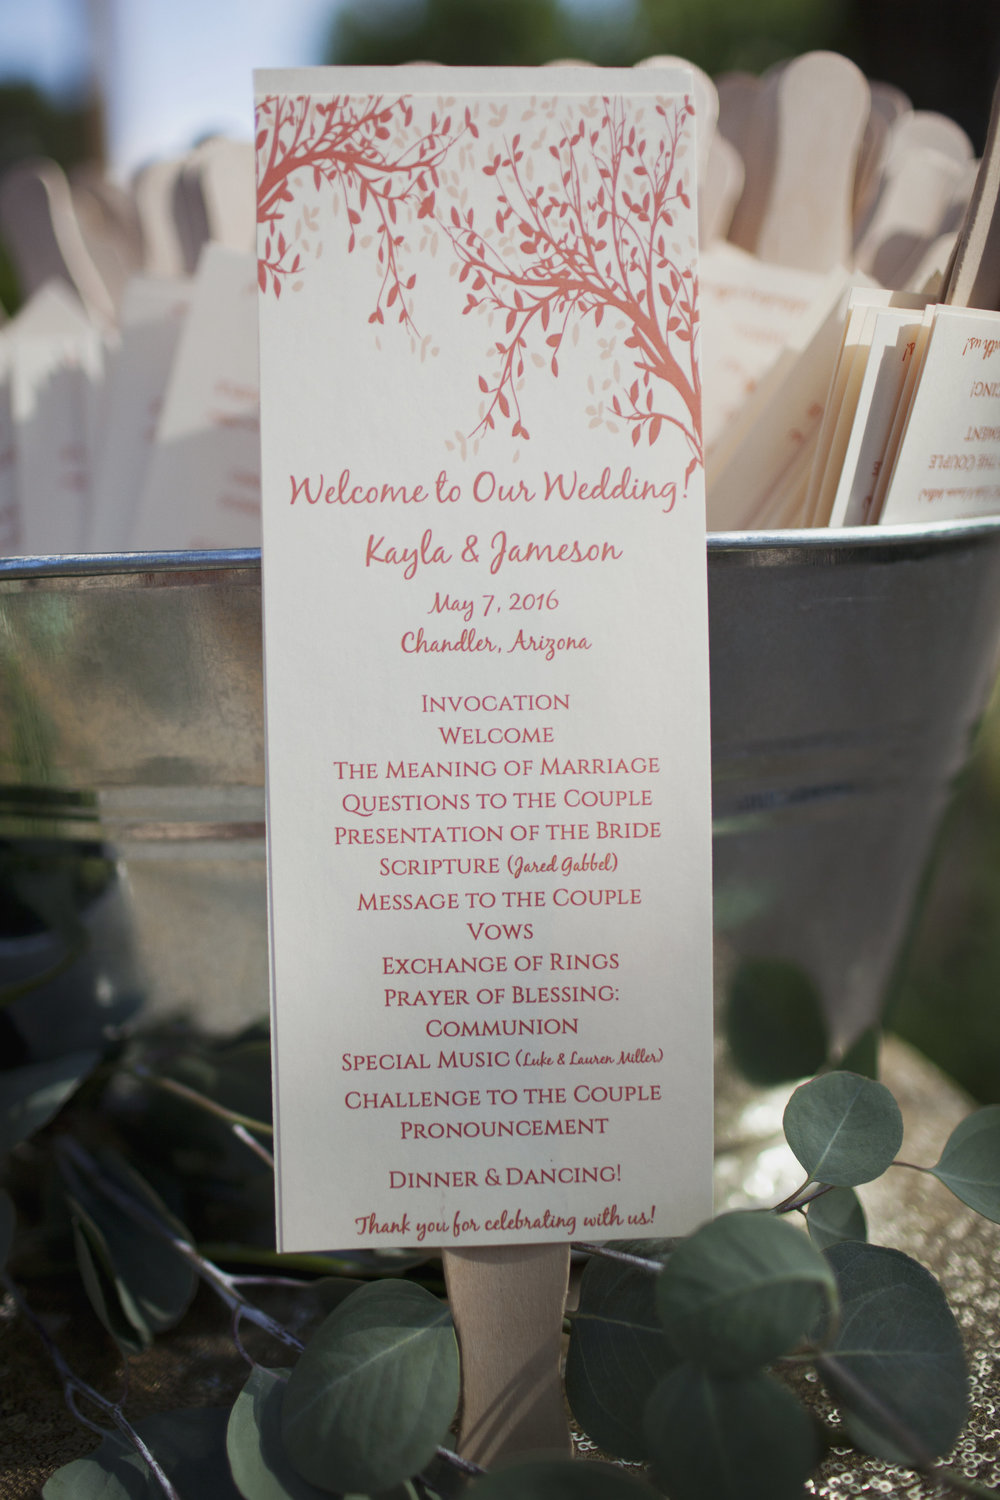 Backyard Wedding Celebration with Tremaine Ranch Wedding Event Tableware Vintage Rentals Arizona6.jpg